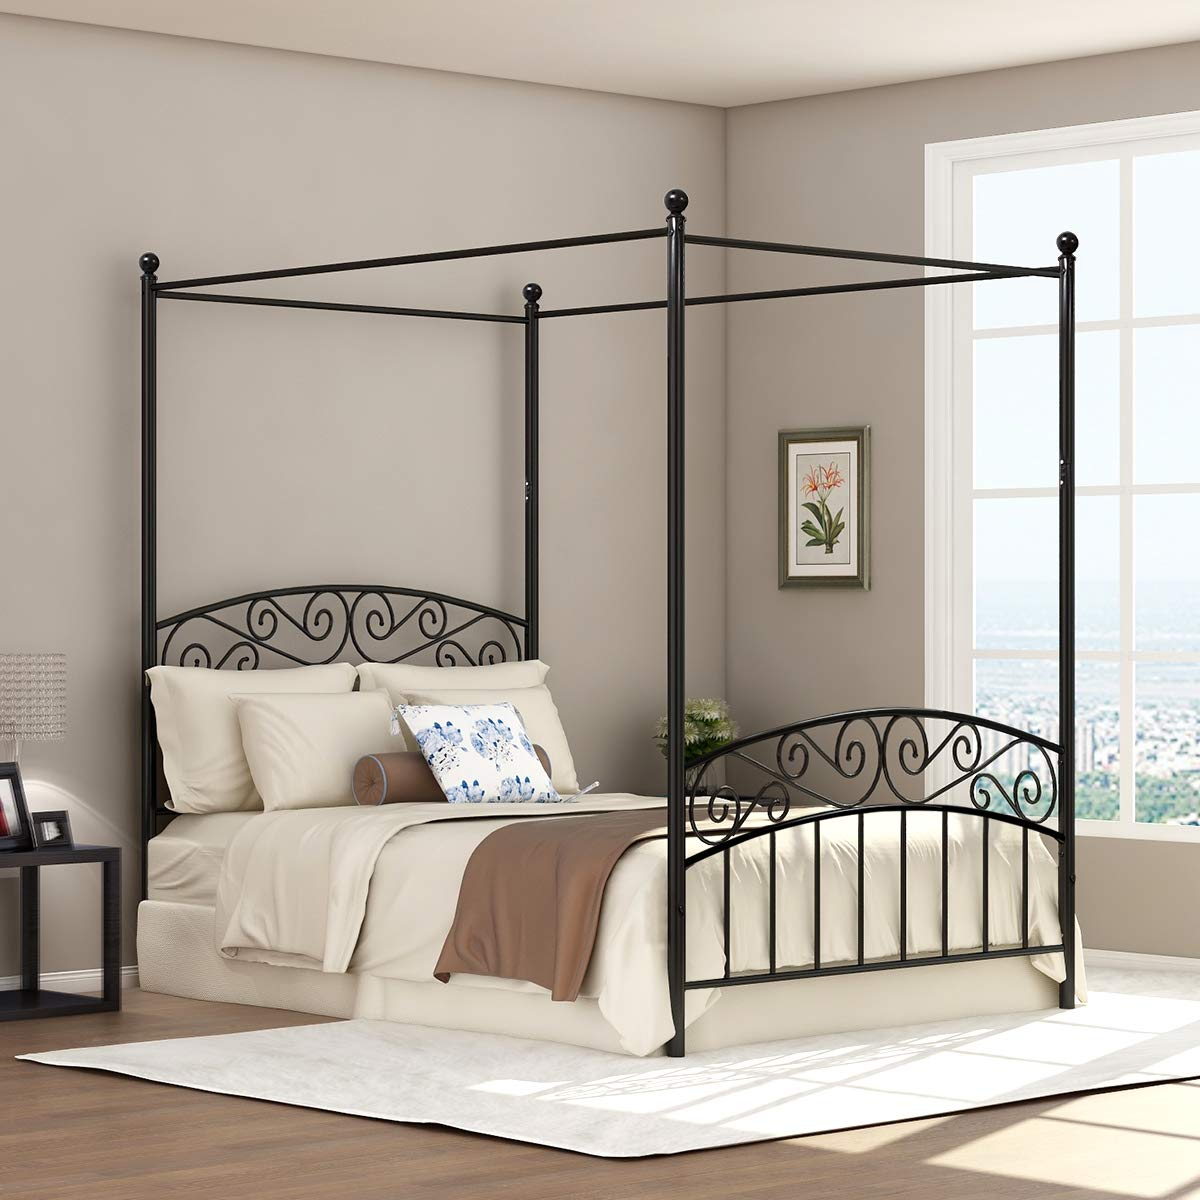 - DUMEE Queen Size Metal Canopy Bed Frame Platform Sweet Pink Style